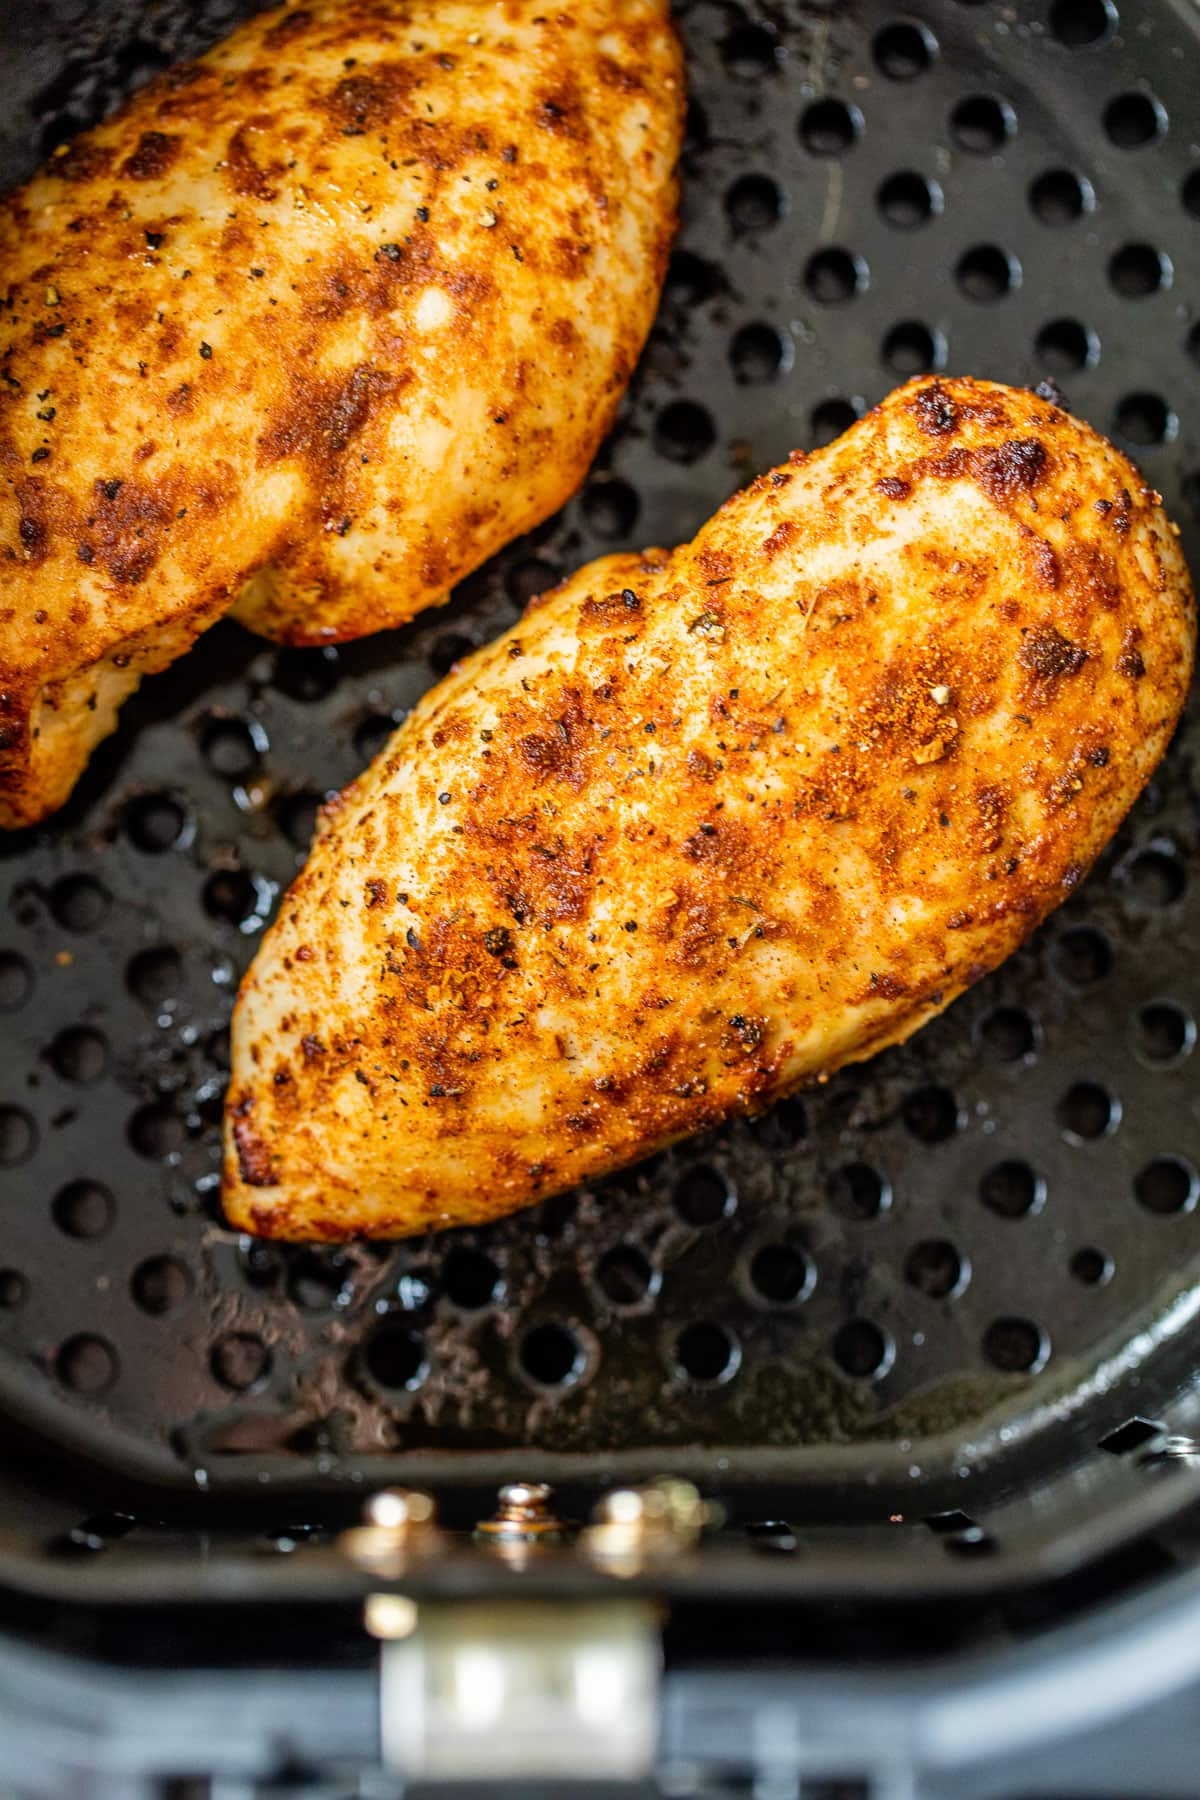 Two air fryer chicken breasts with seasoning